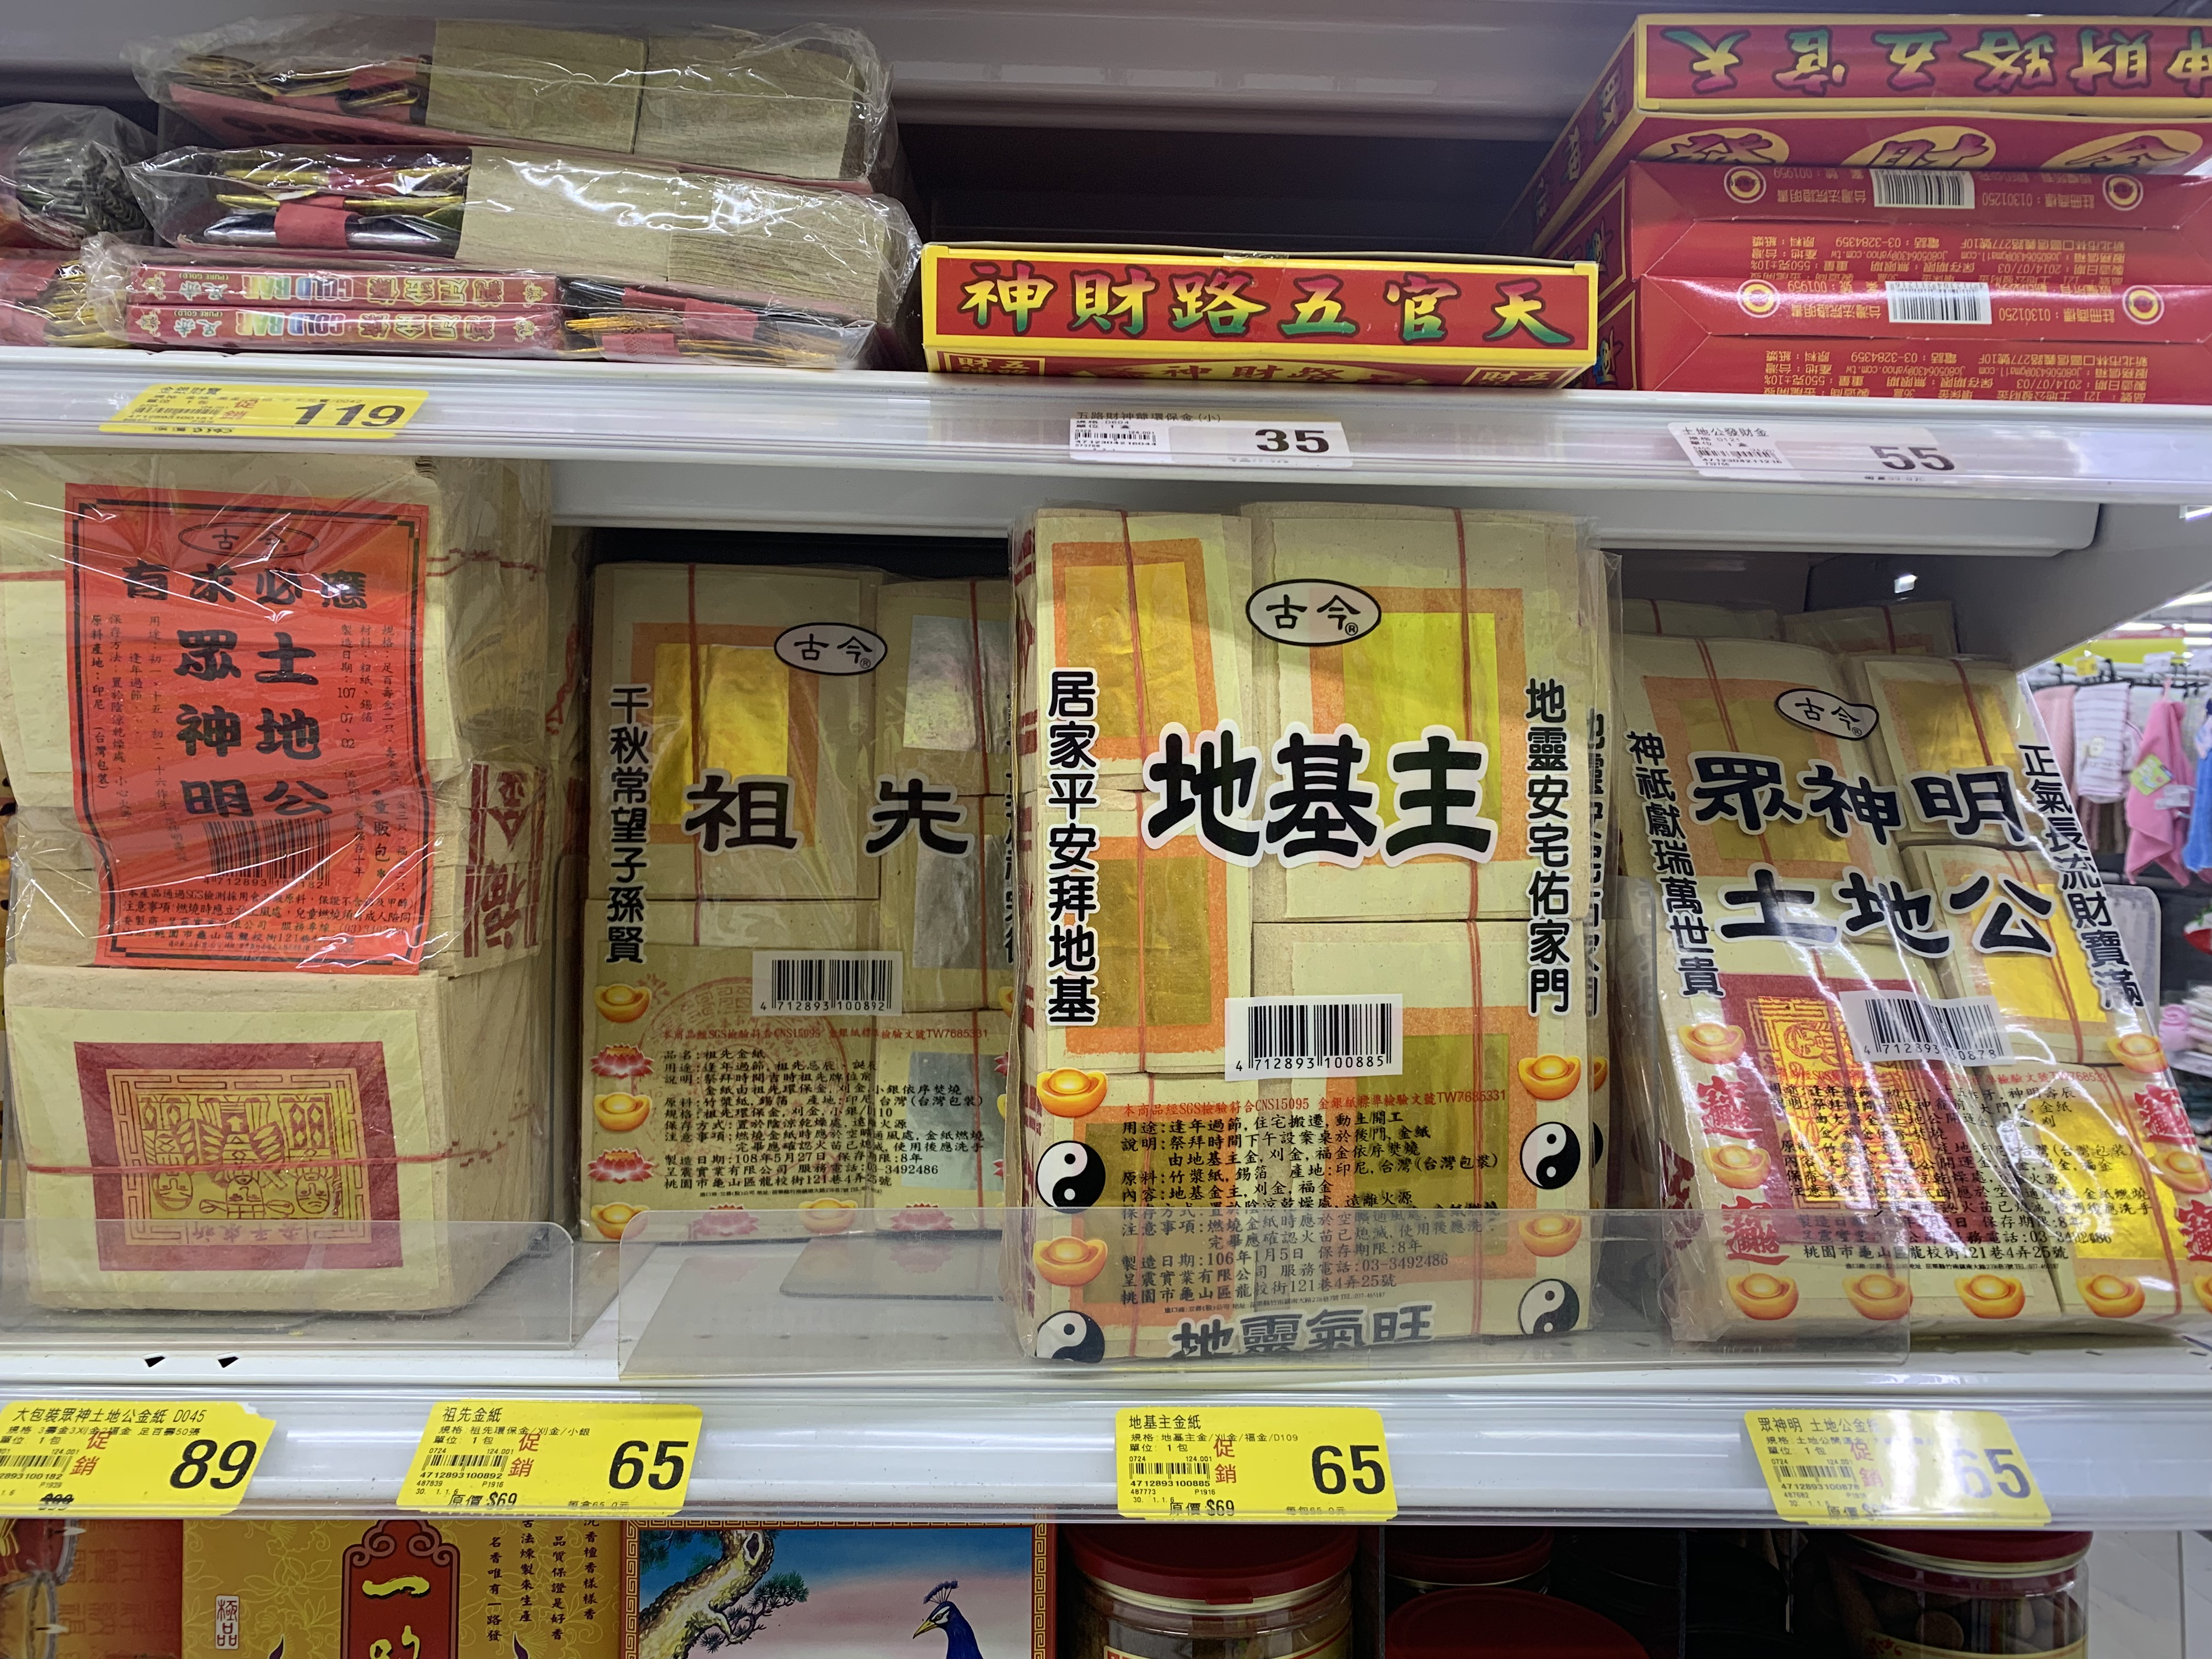 holder of this work, hereby publish it under the following license: English Packages of environmentally friendly joss paper in a RT-Mart in Taichung.